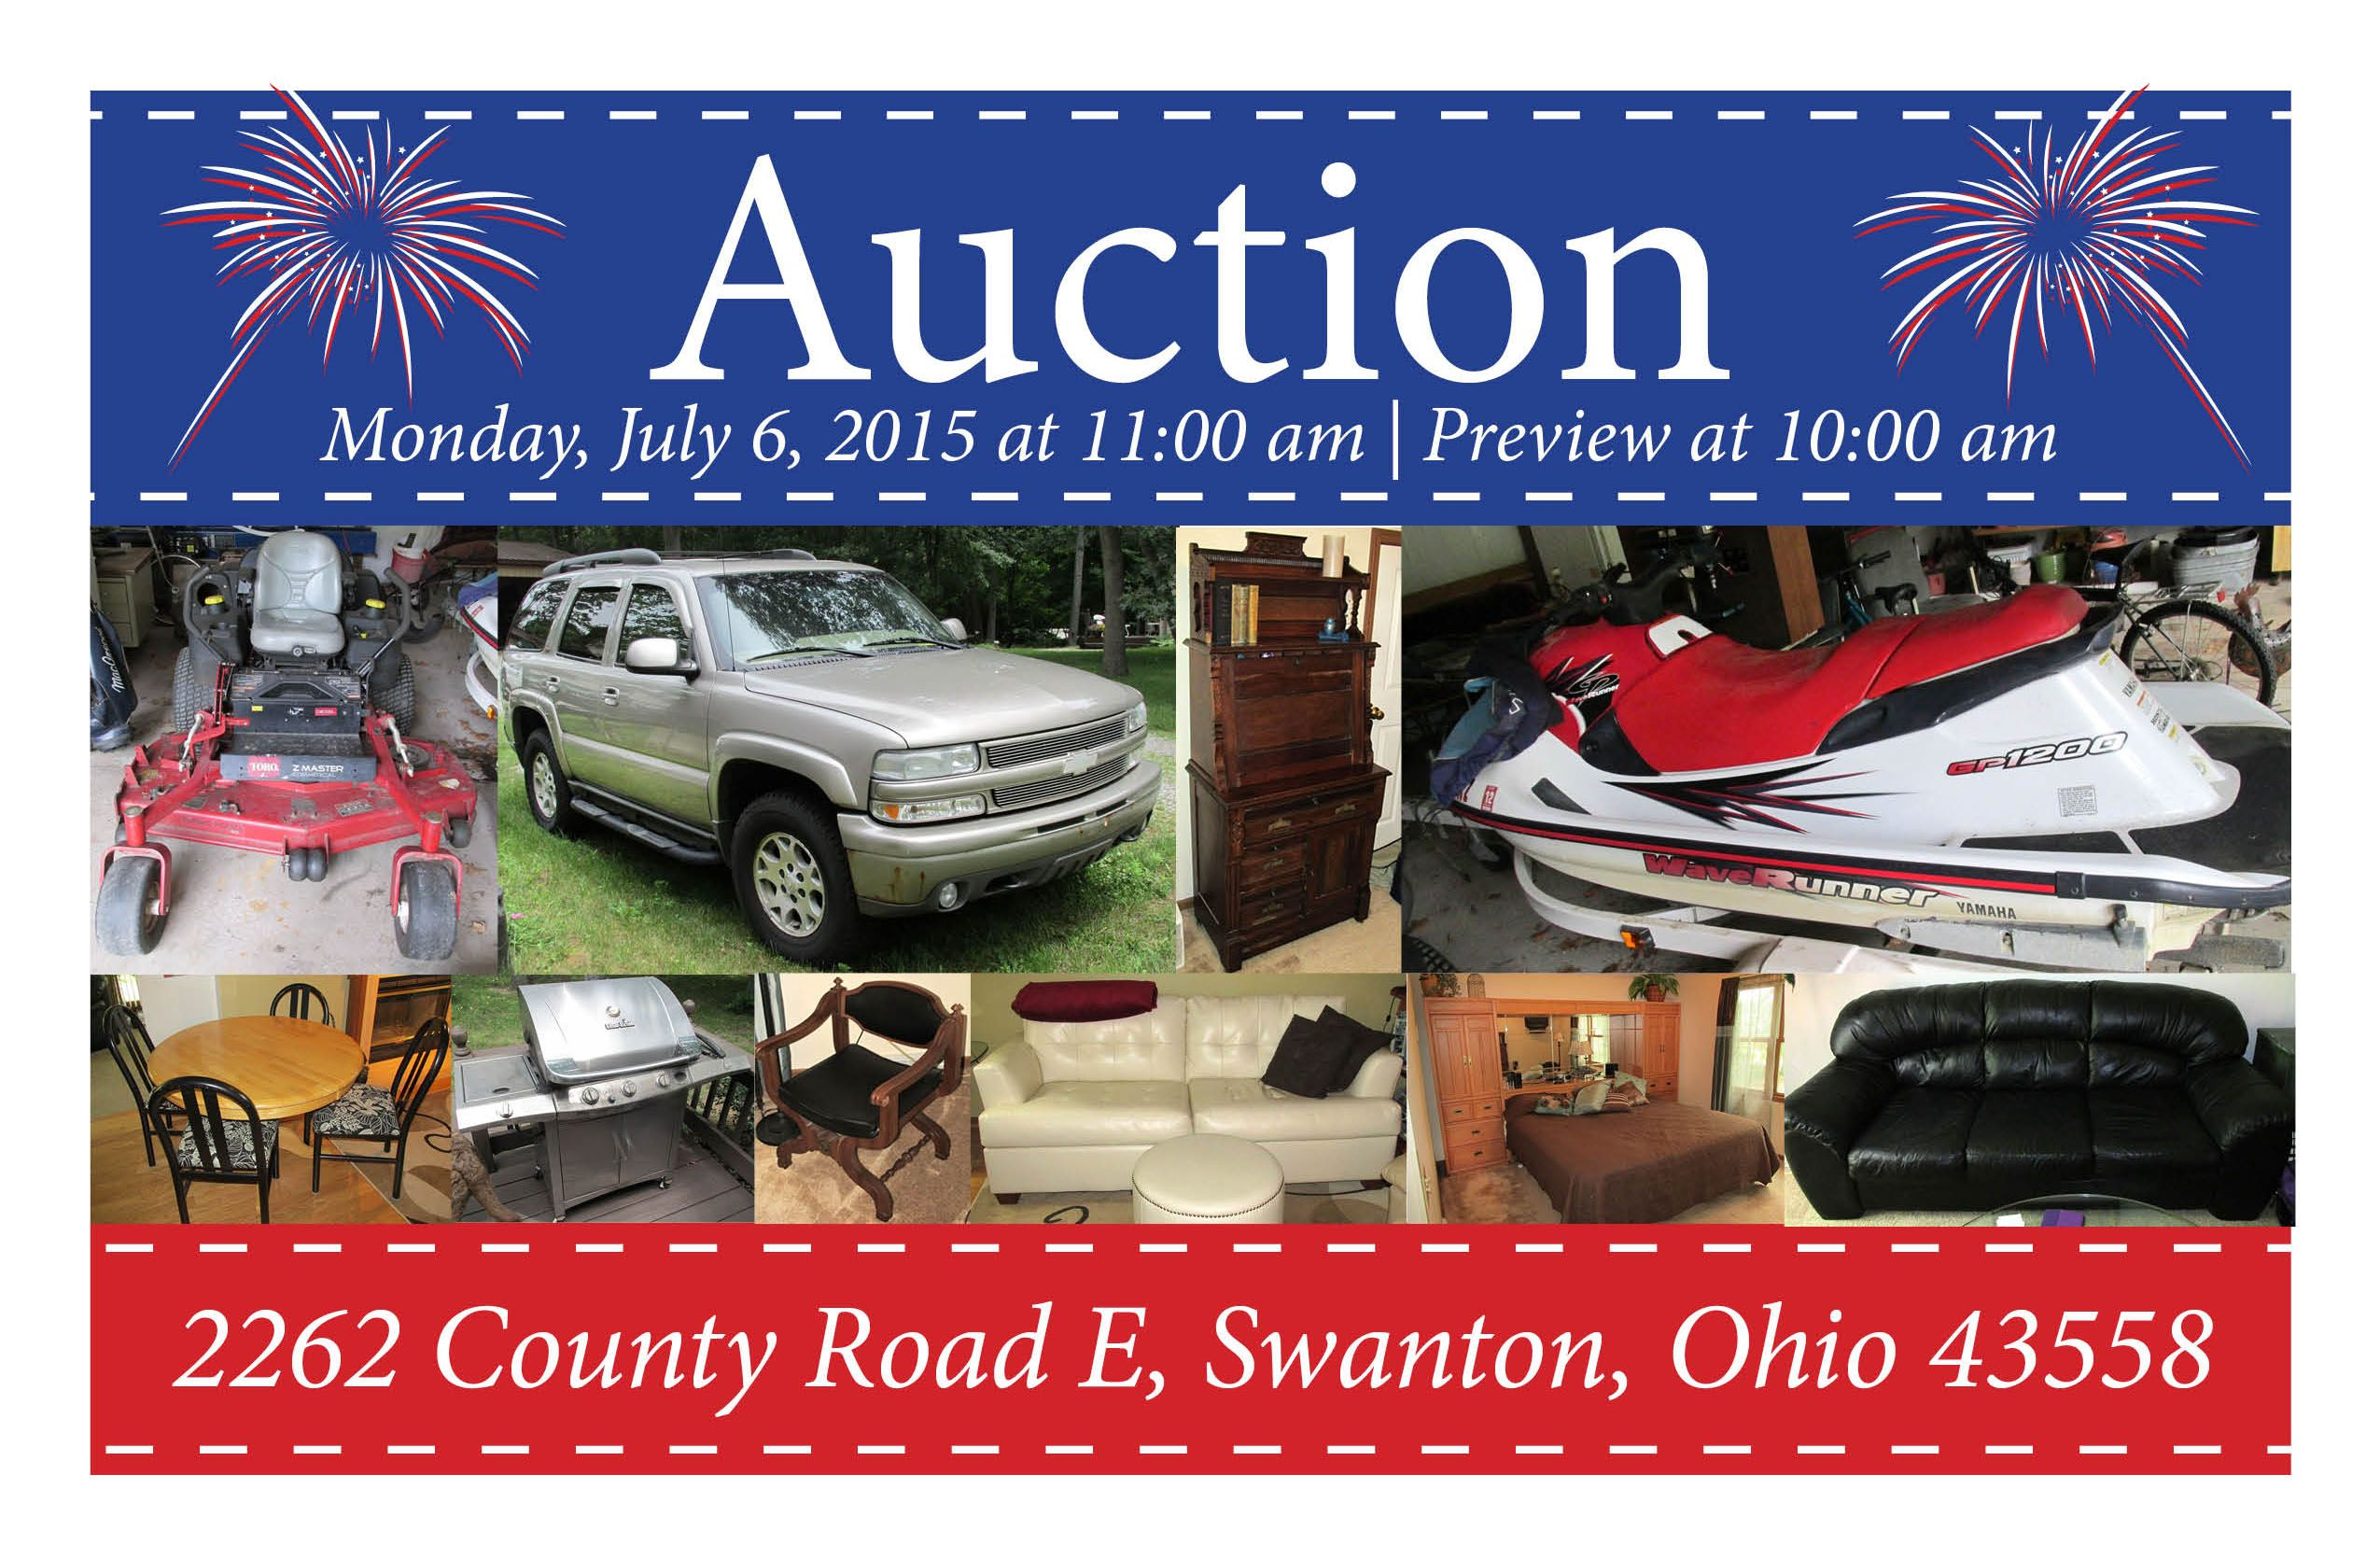 Live On-Site Auction in Swanton! Monday, July 6, 2015 at 11:00 am Preview & Registration Open at 10:00 am 2262 County Road E, Swanton, Ohio 43558  View More Info at www.pamelaroseauction.com or call (419) 865-1224  Pamela Rose Auction Co. LLC #pamelaroseauction